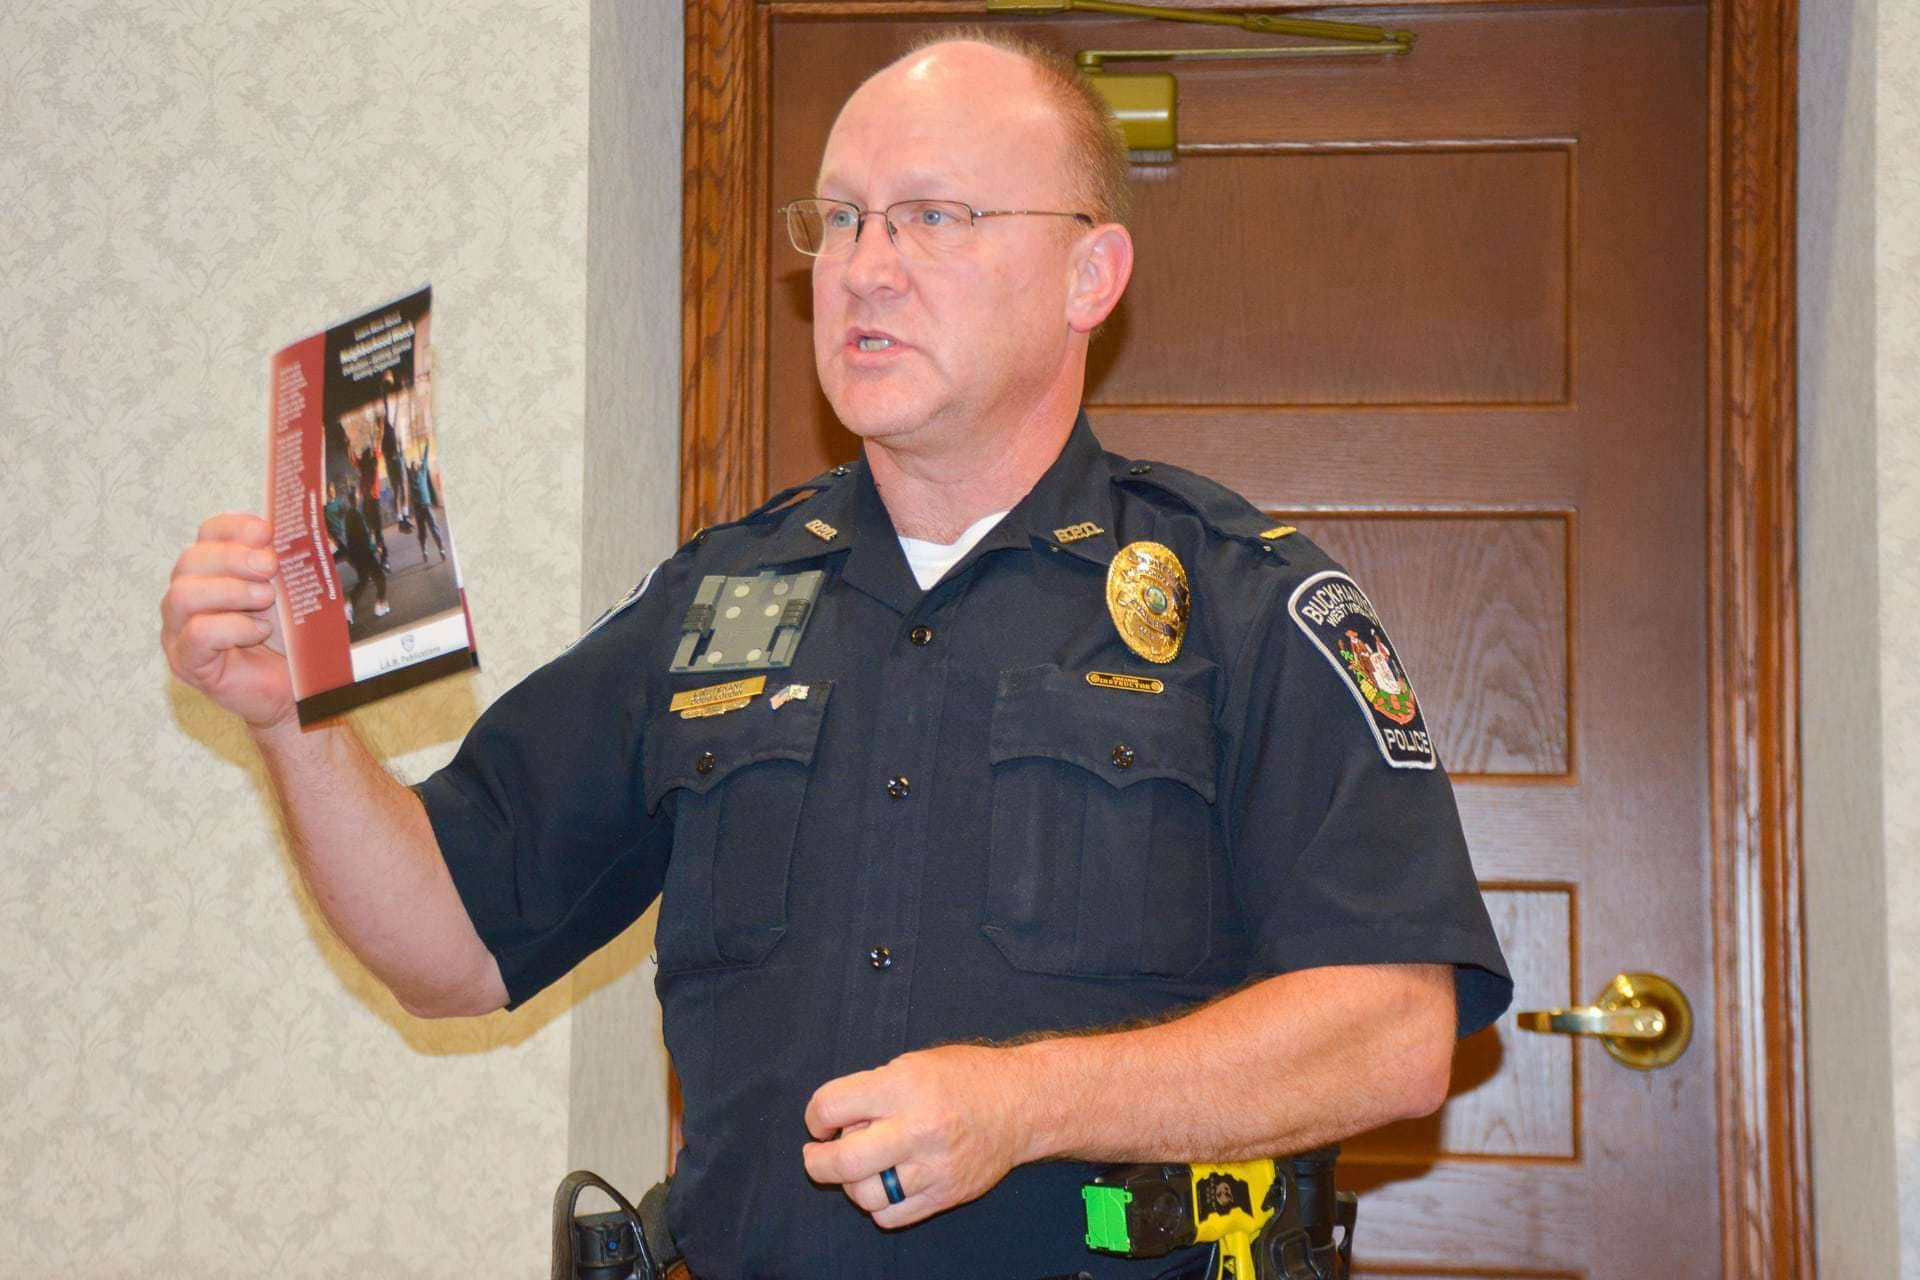 Neighborhood Watch program to resume following complaints about drug activity in North Buckhannon